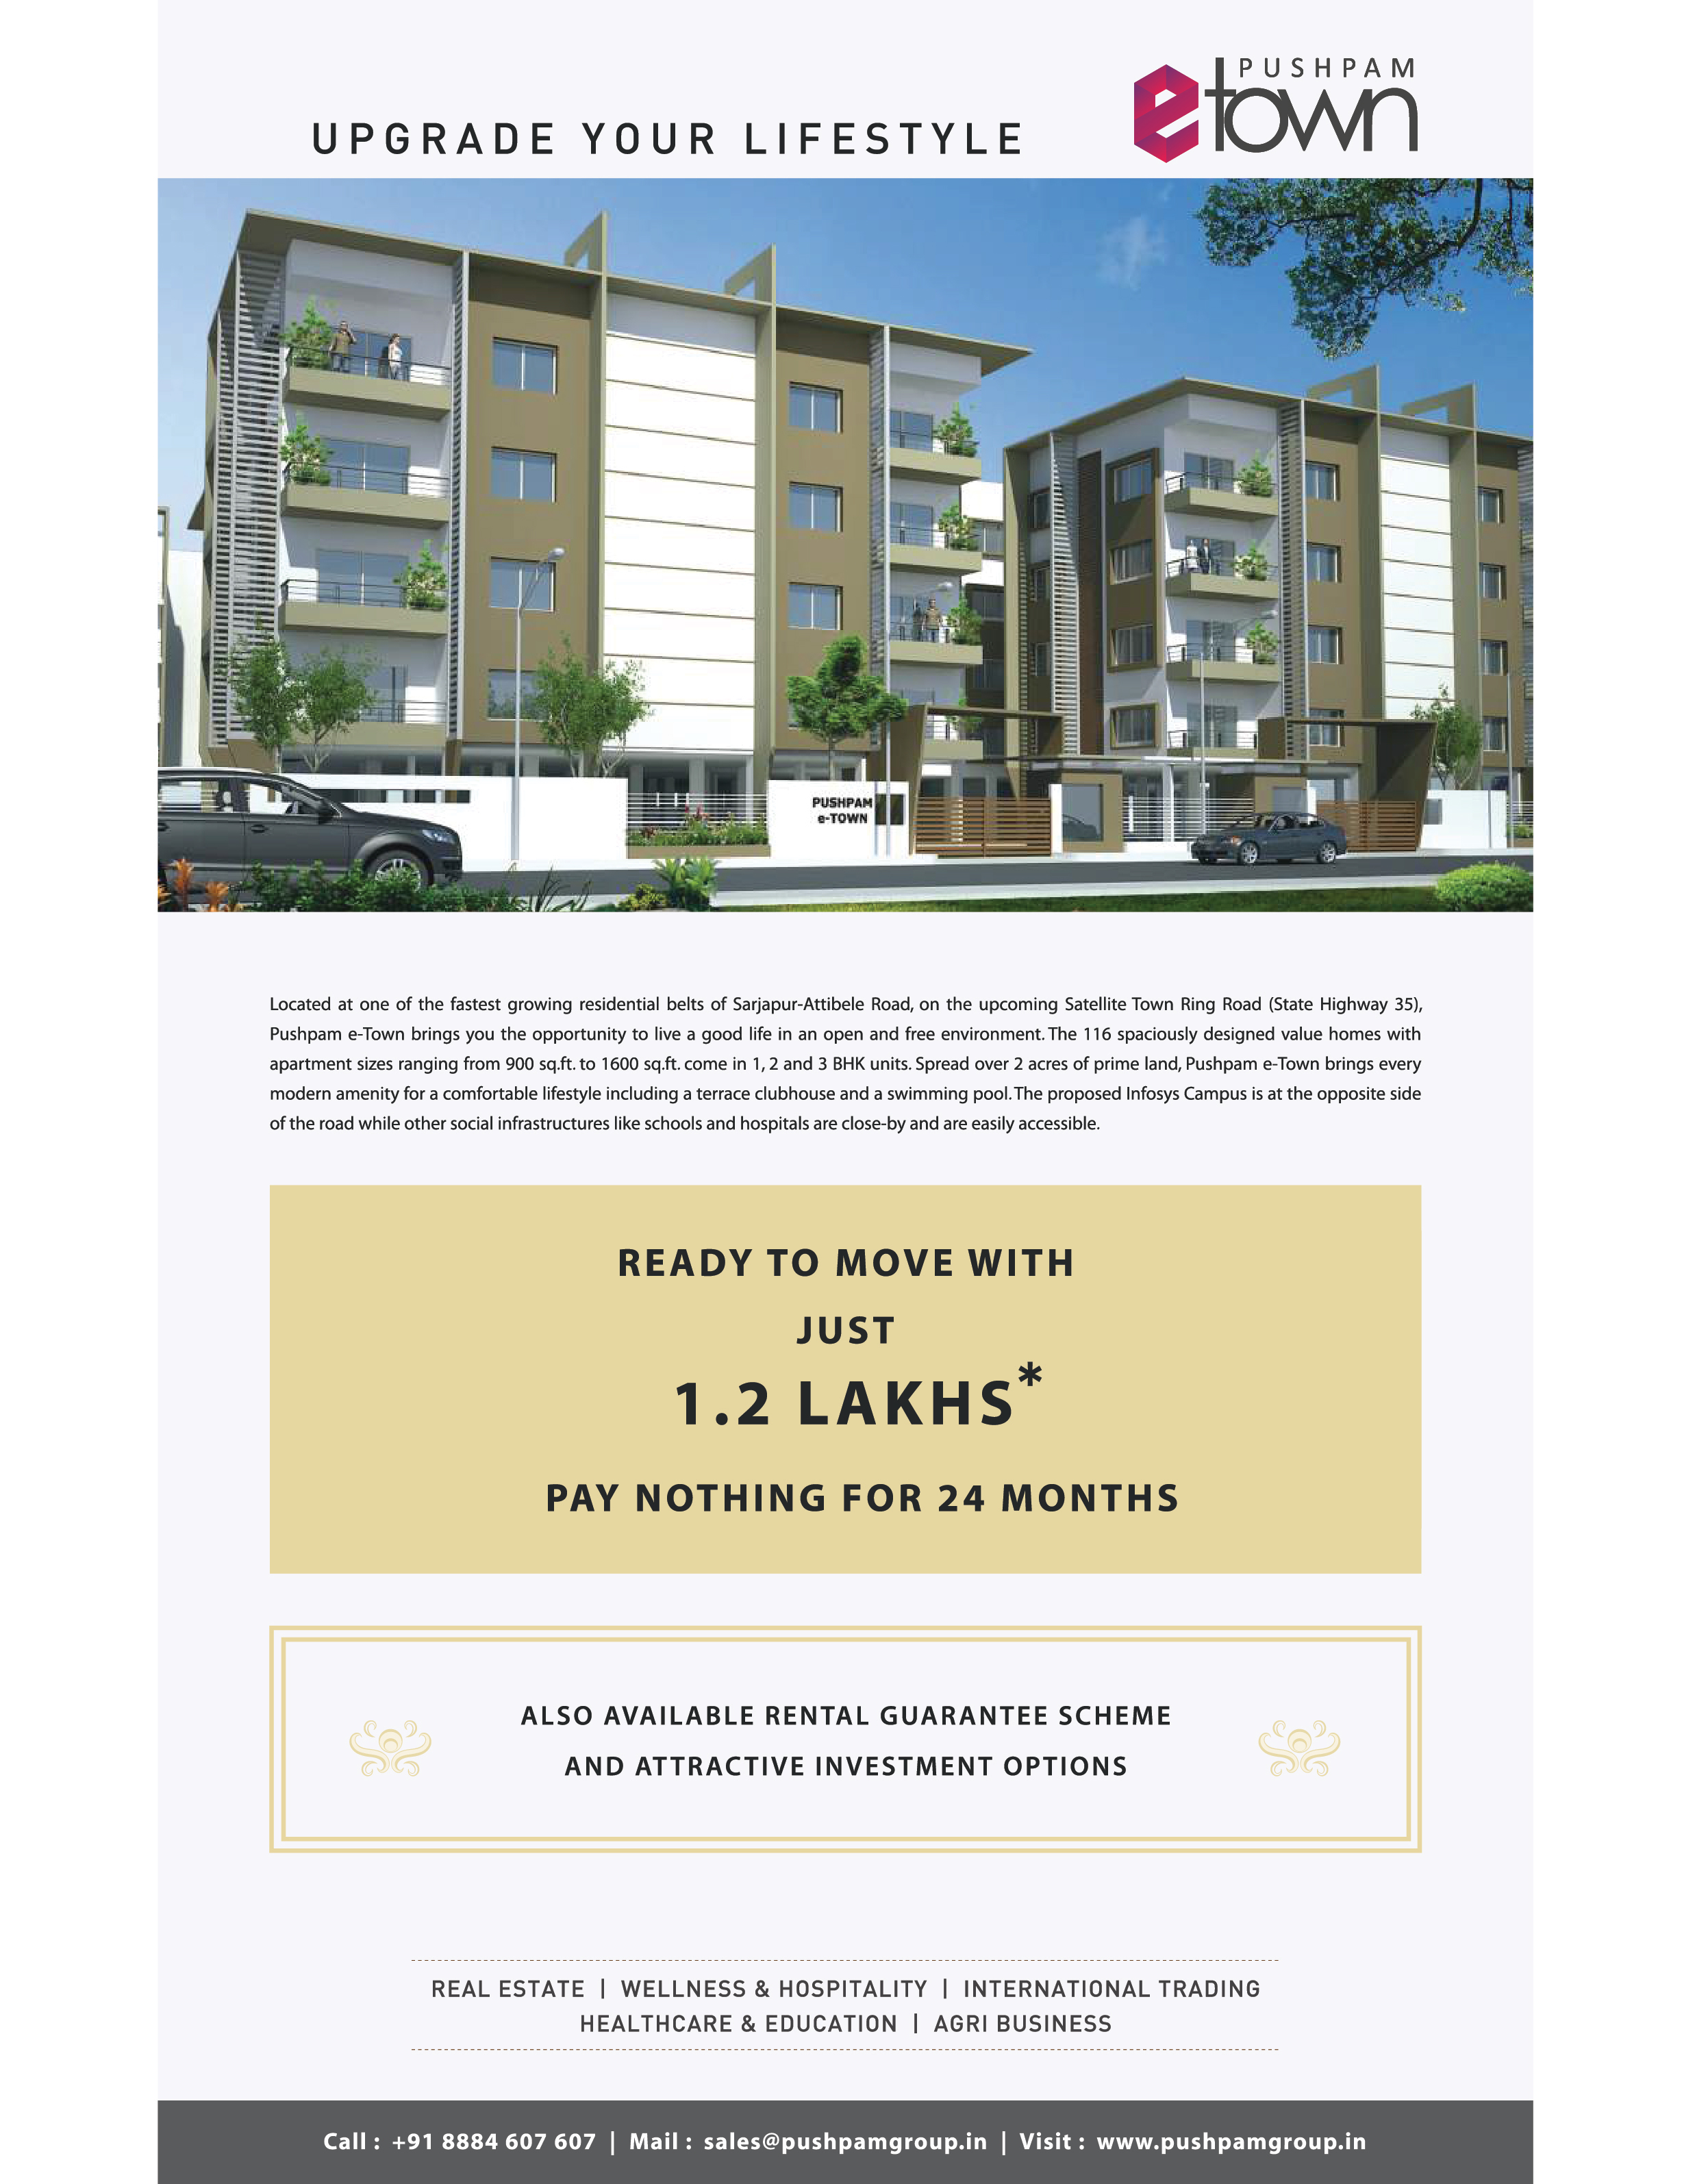 Flats for sale in sarjapur  116 units BMRDA approved property, G+3floor, with option of 1, 2 & 3bhk  in 2 acres of land with all  modern amenities.  http://www.pushpamgroup.in/projects/ongoing/pet_overview.html